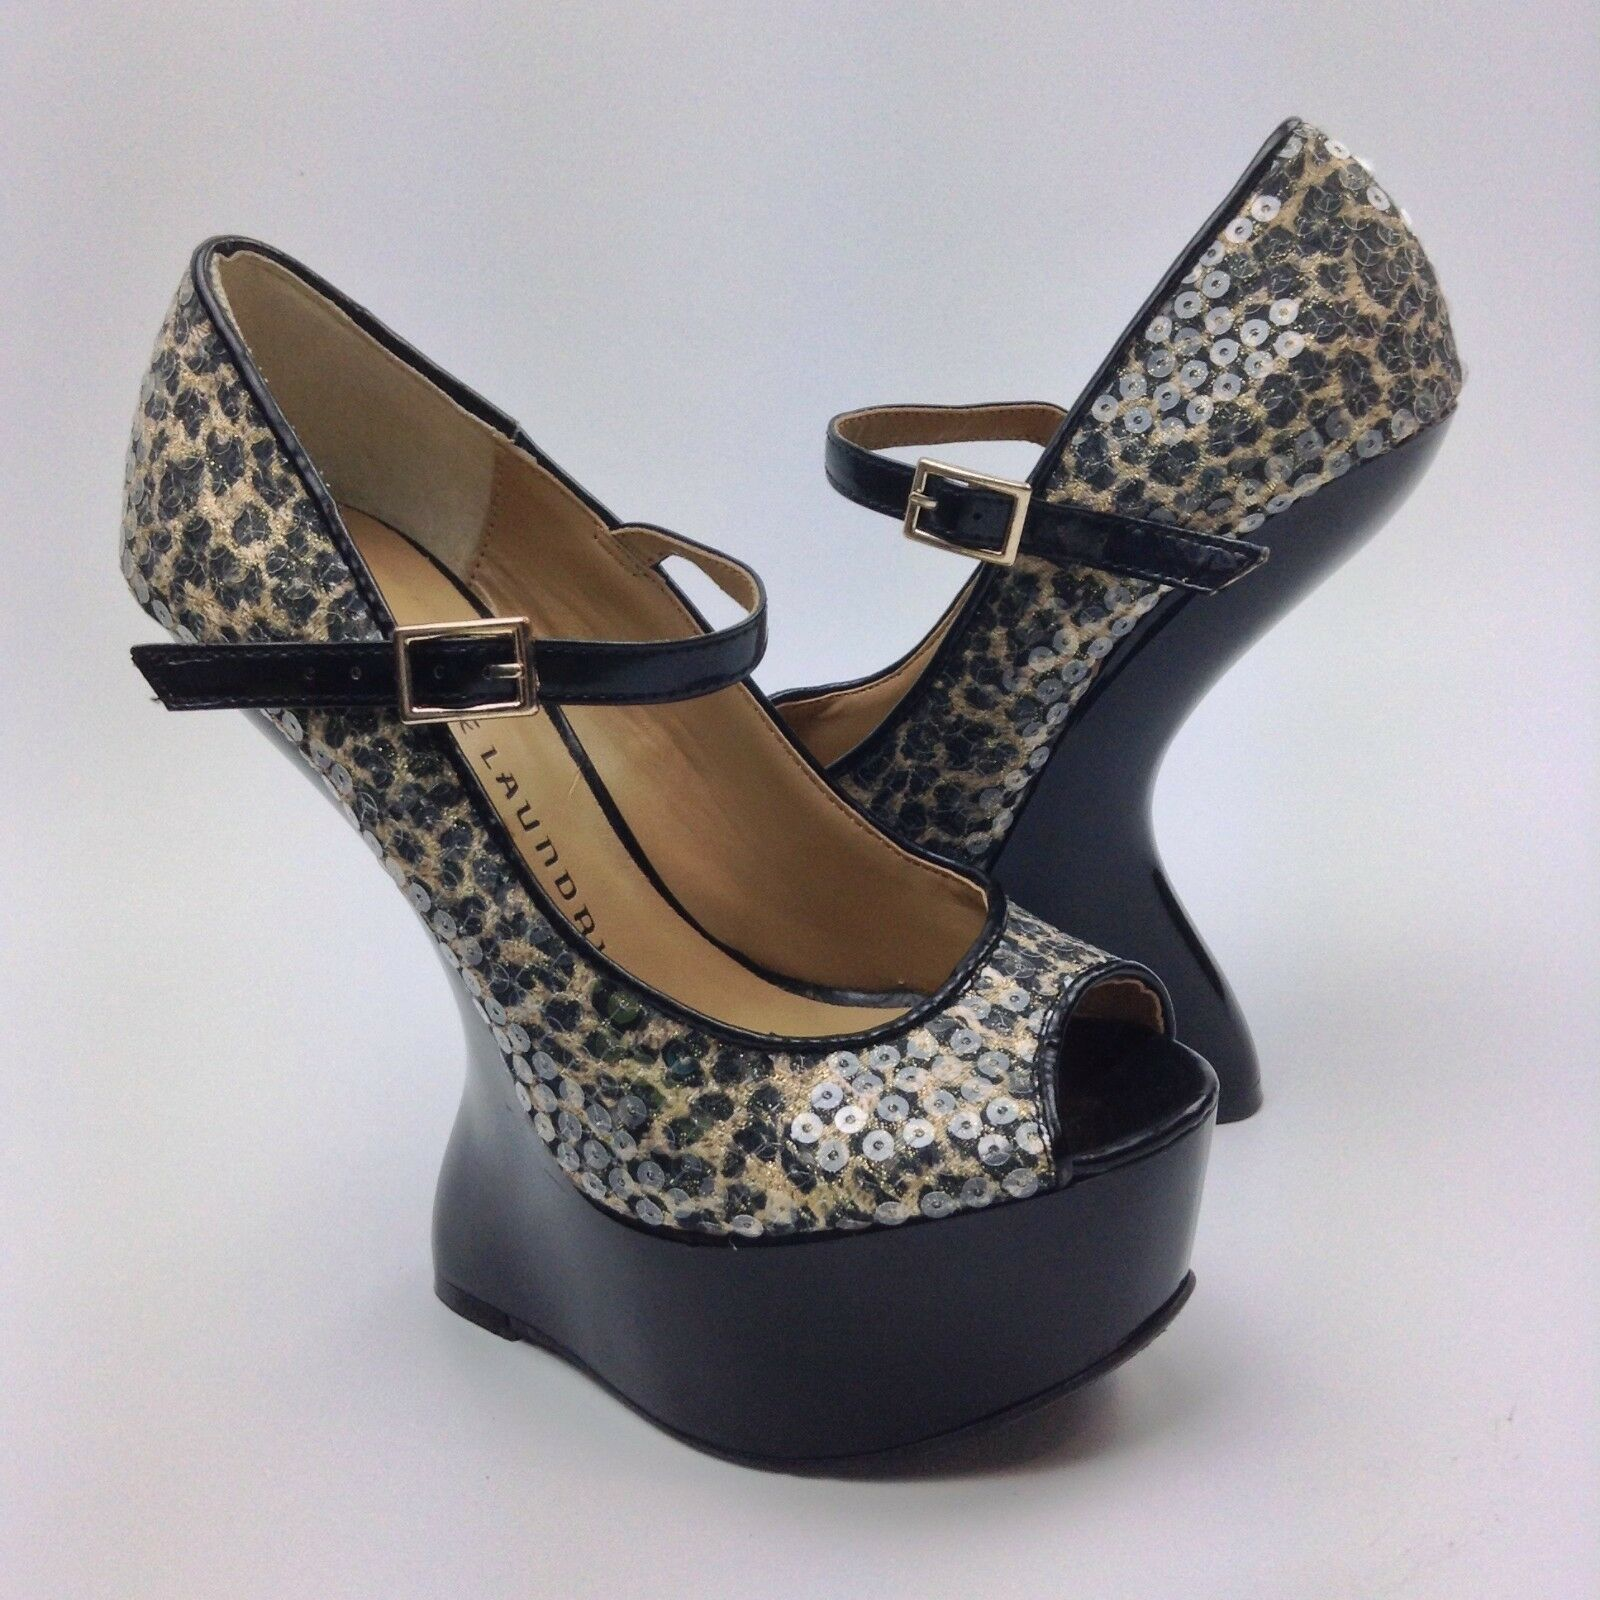 Chinese Laundry China High Doll Heeless Wedge Pumps Größe 5M High China Heels Leopard 19a89a